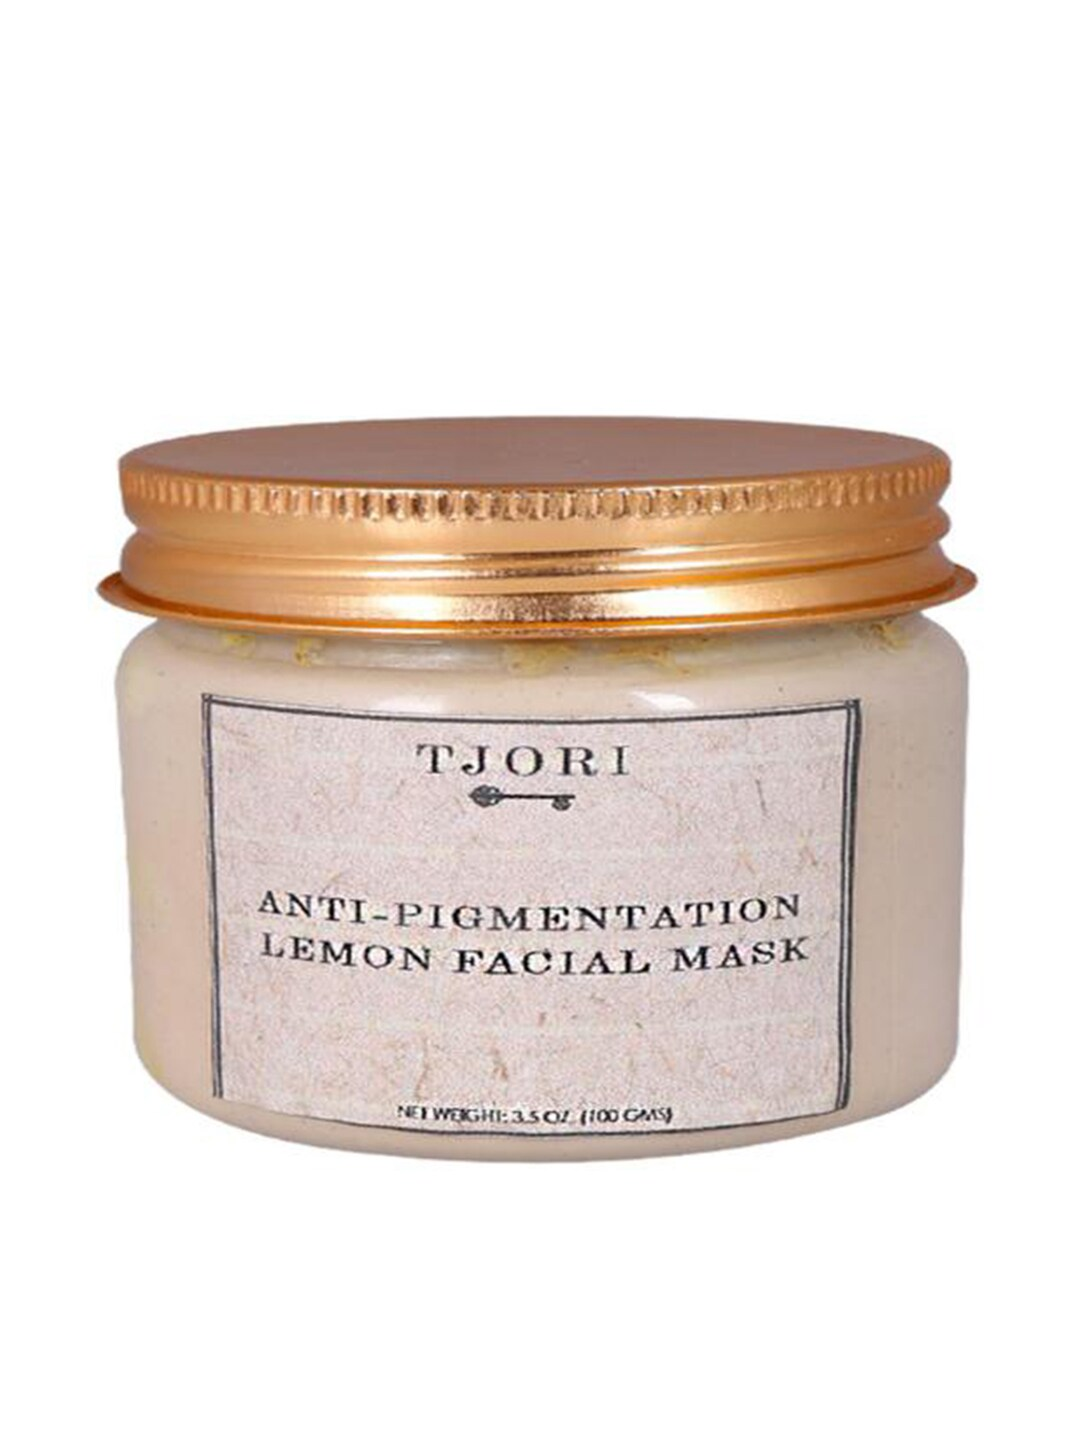 TJORI Women Anti-Pigmentation Lemon Facial Mask